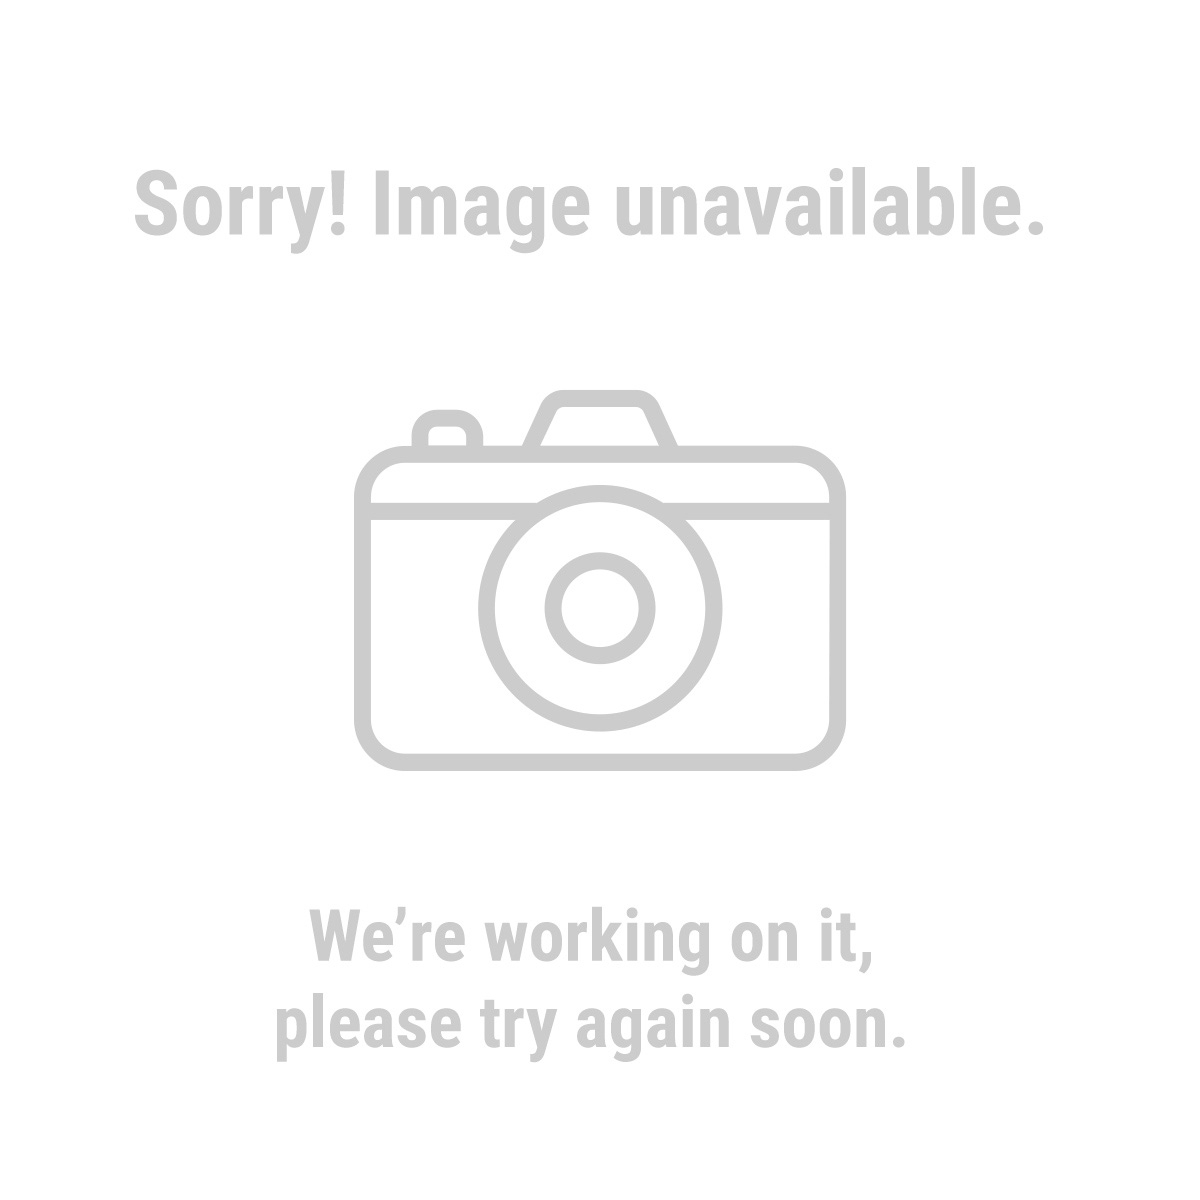 Haul-Master® 62648 1195 lb. Capacity 48 in. x 96 in. Heavy Duty Folding Trailer